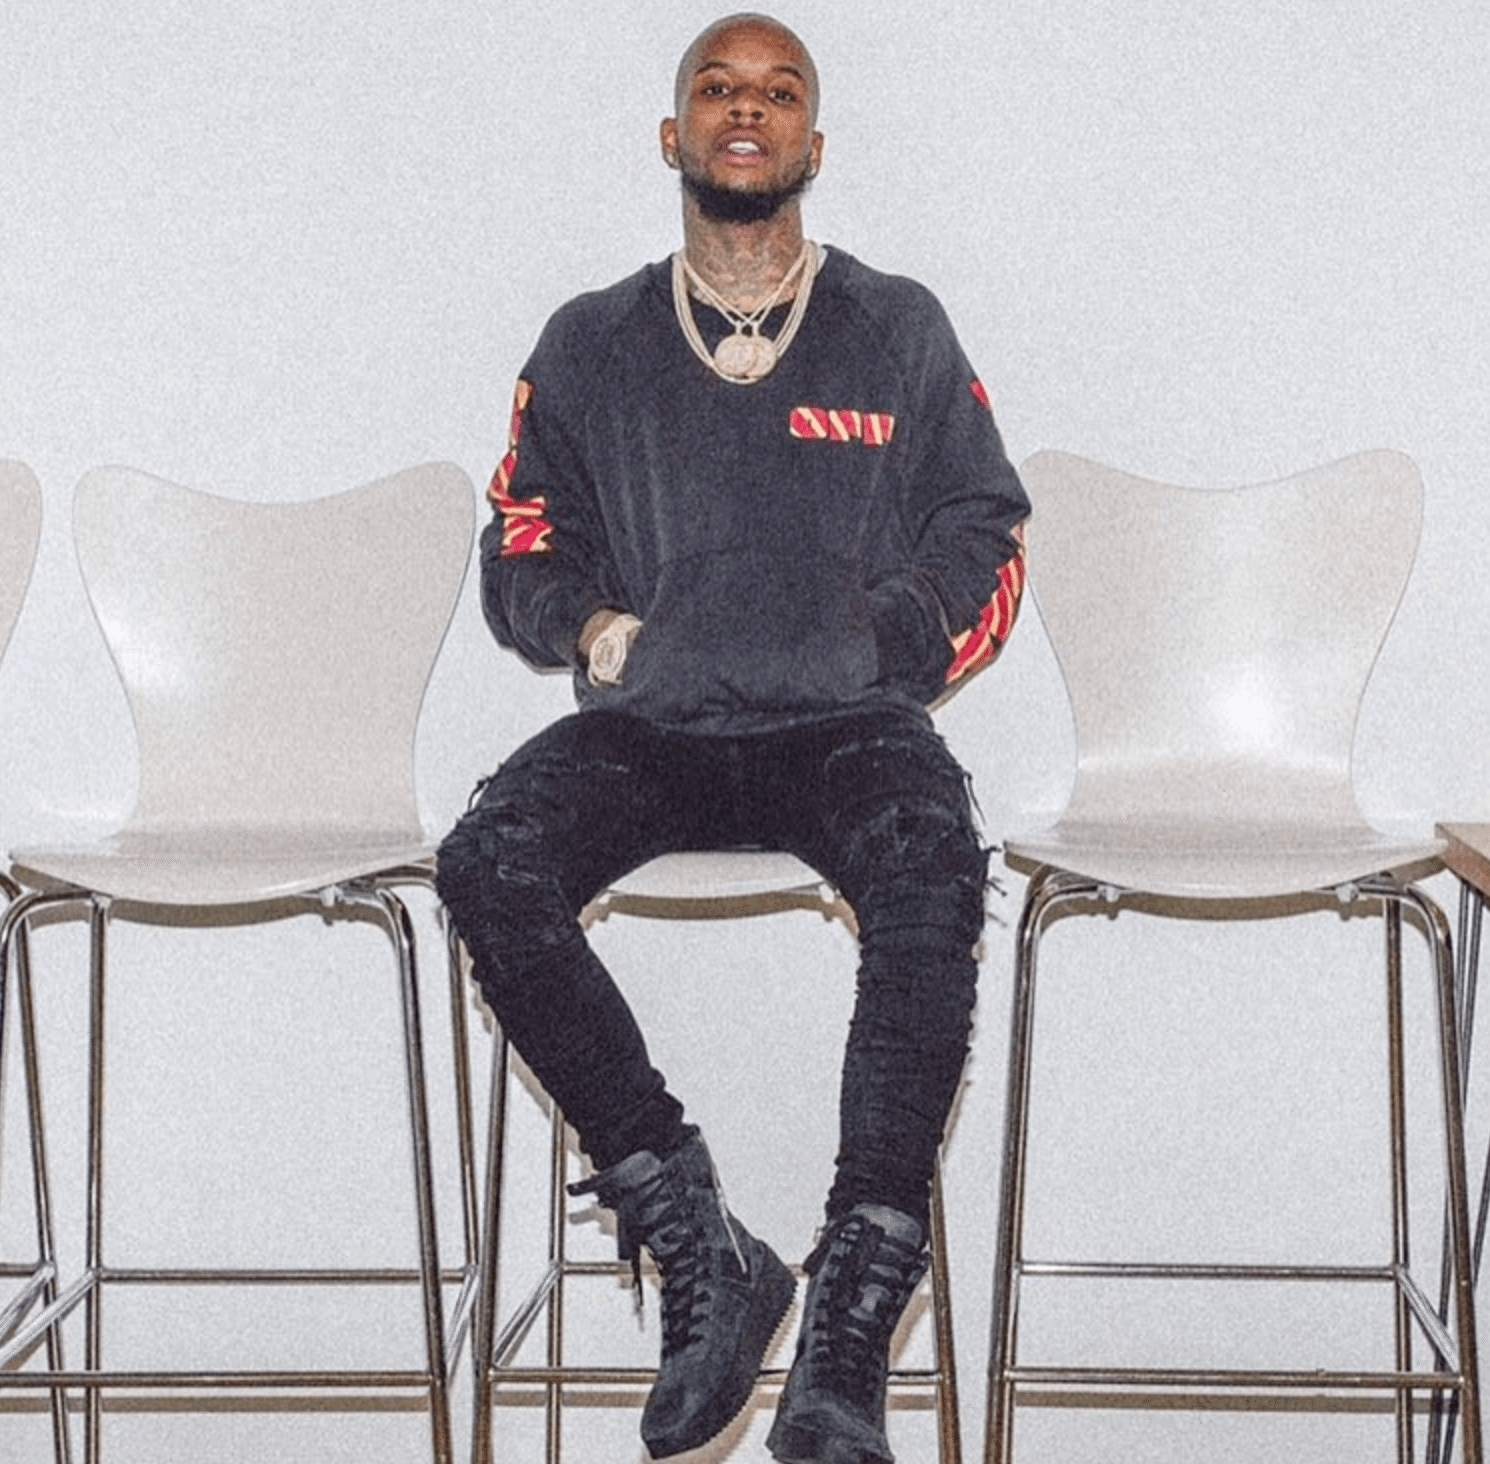 Tory Lanez in the Fear of God Sneakers